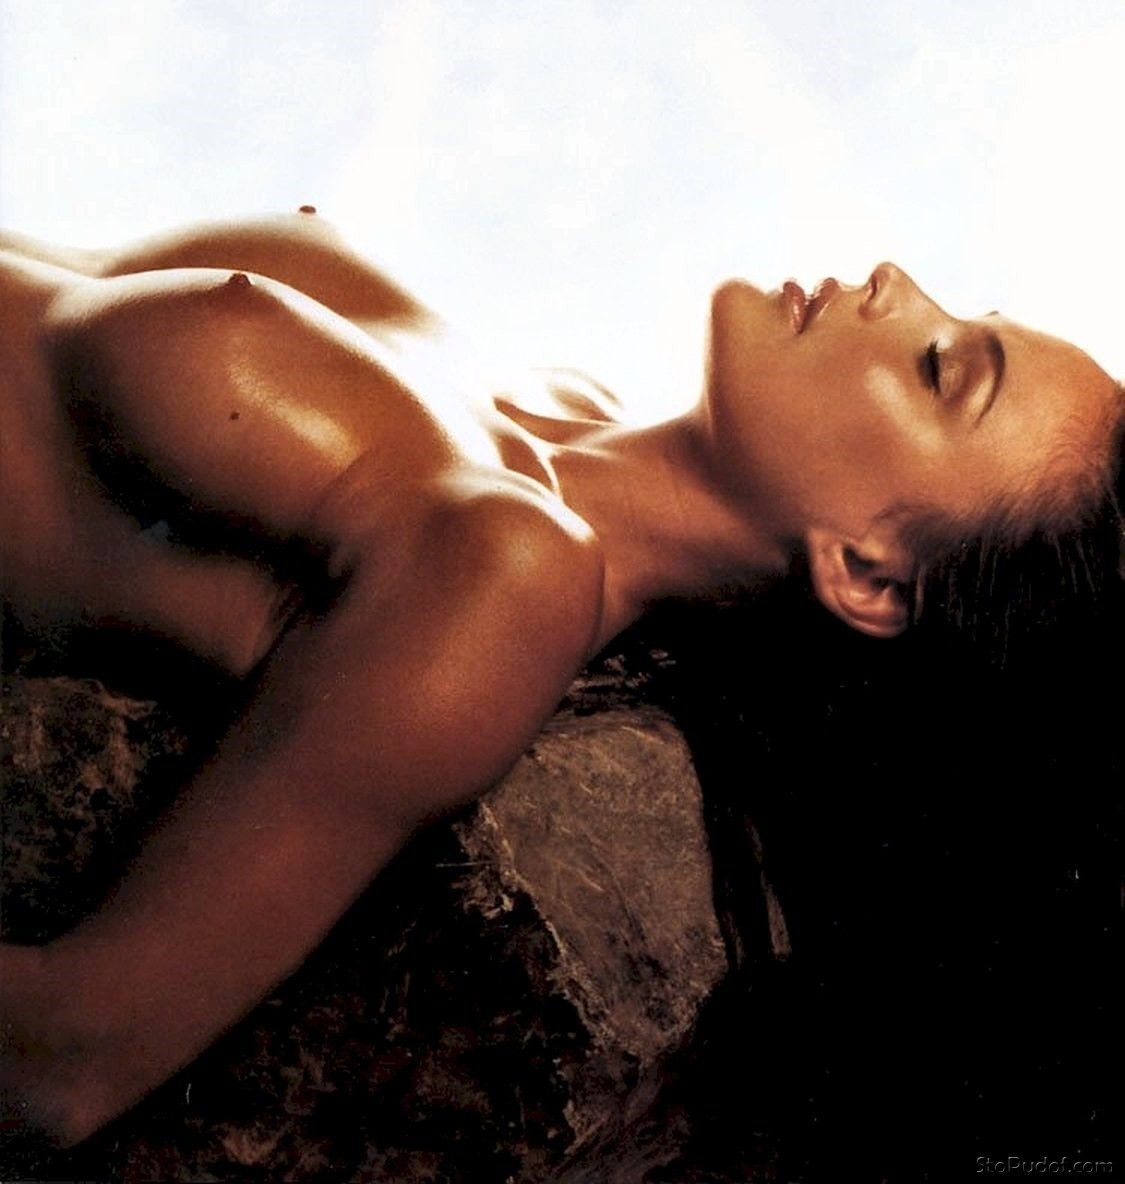 naked photo leak Josie Maran - UkPhotoSafari